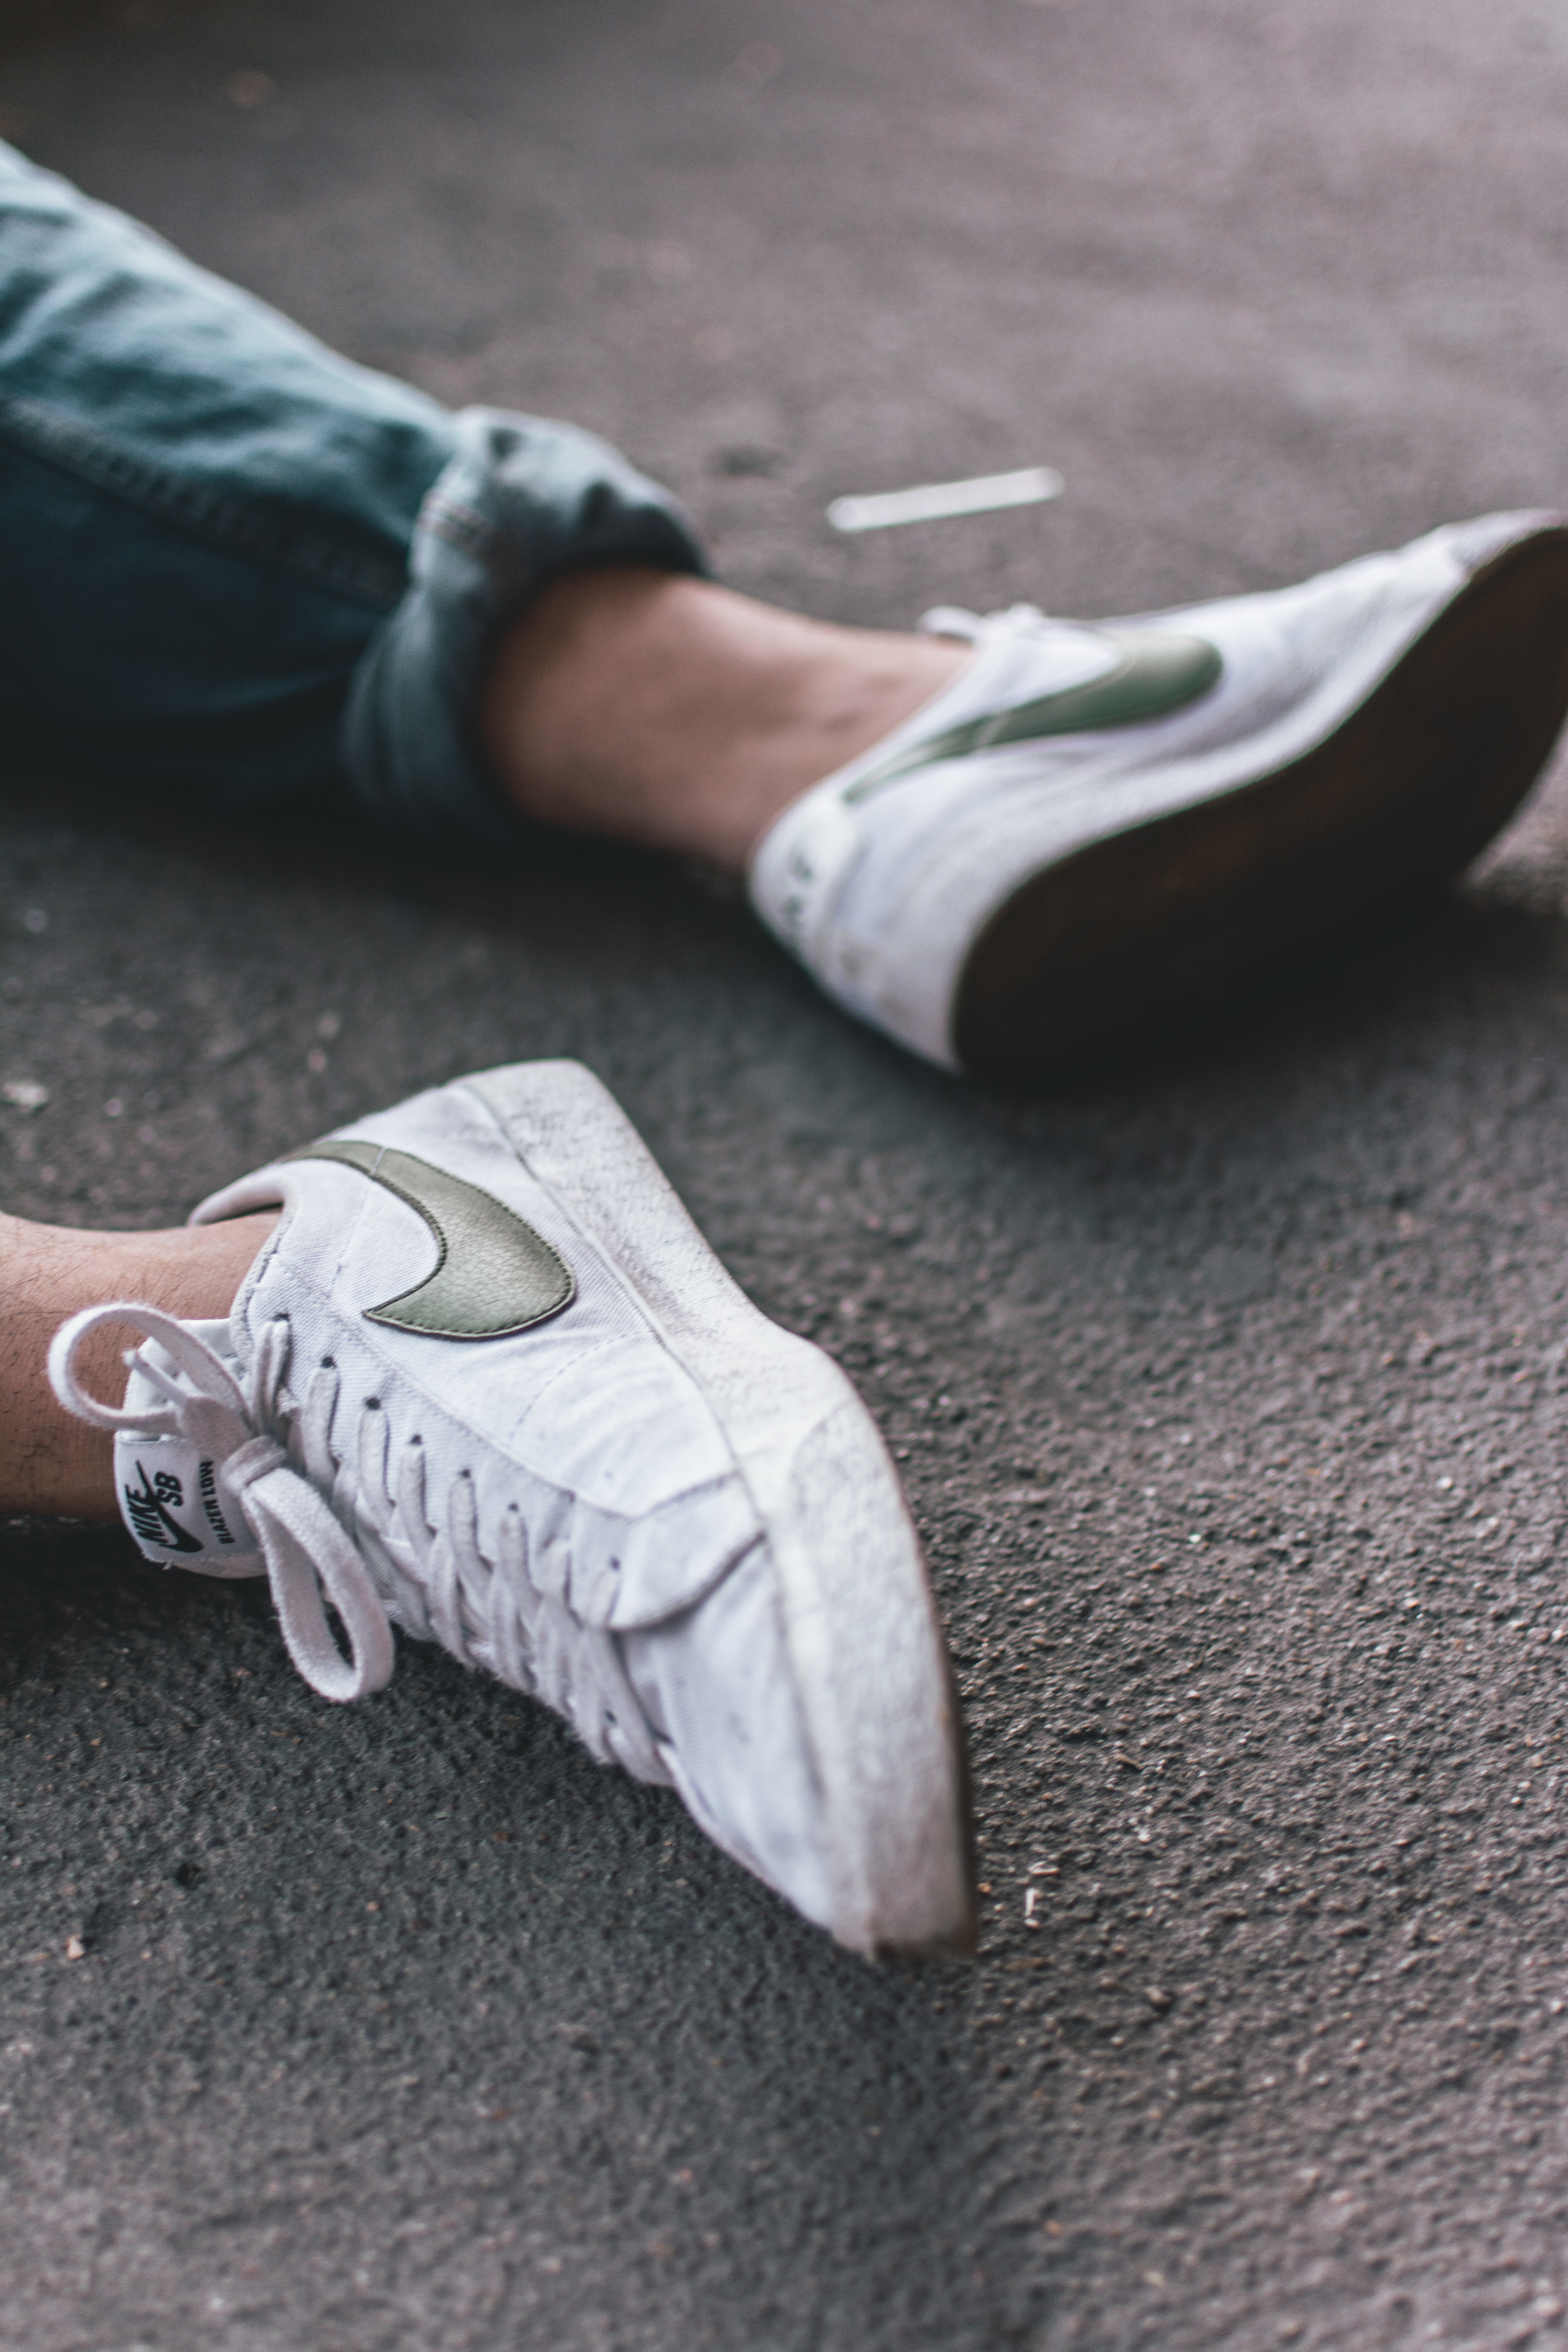 person wearing pair of white Nike sneakers